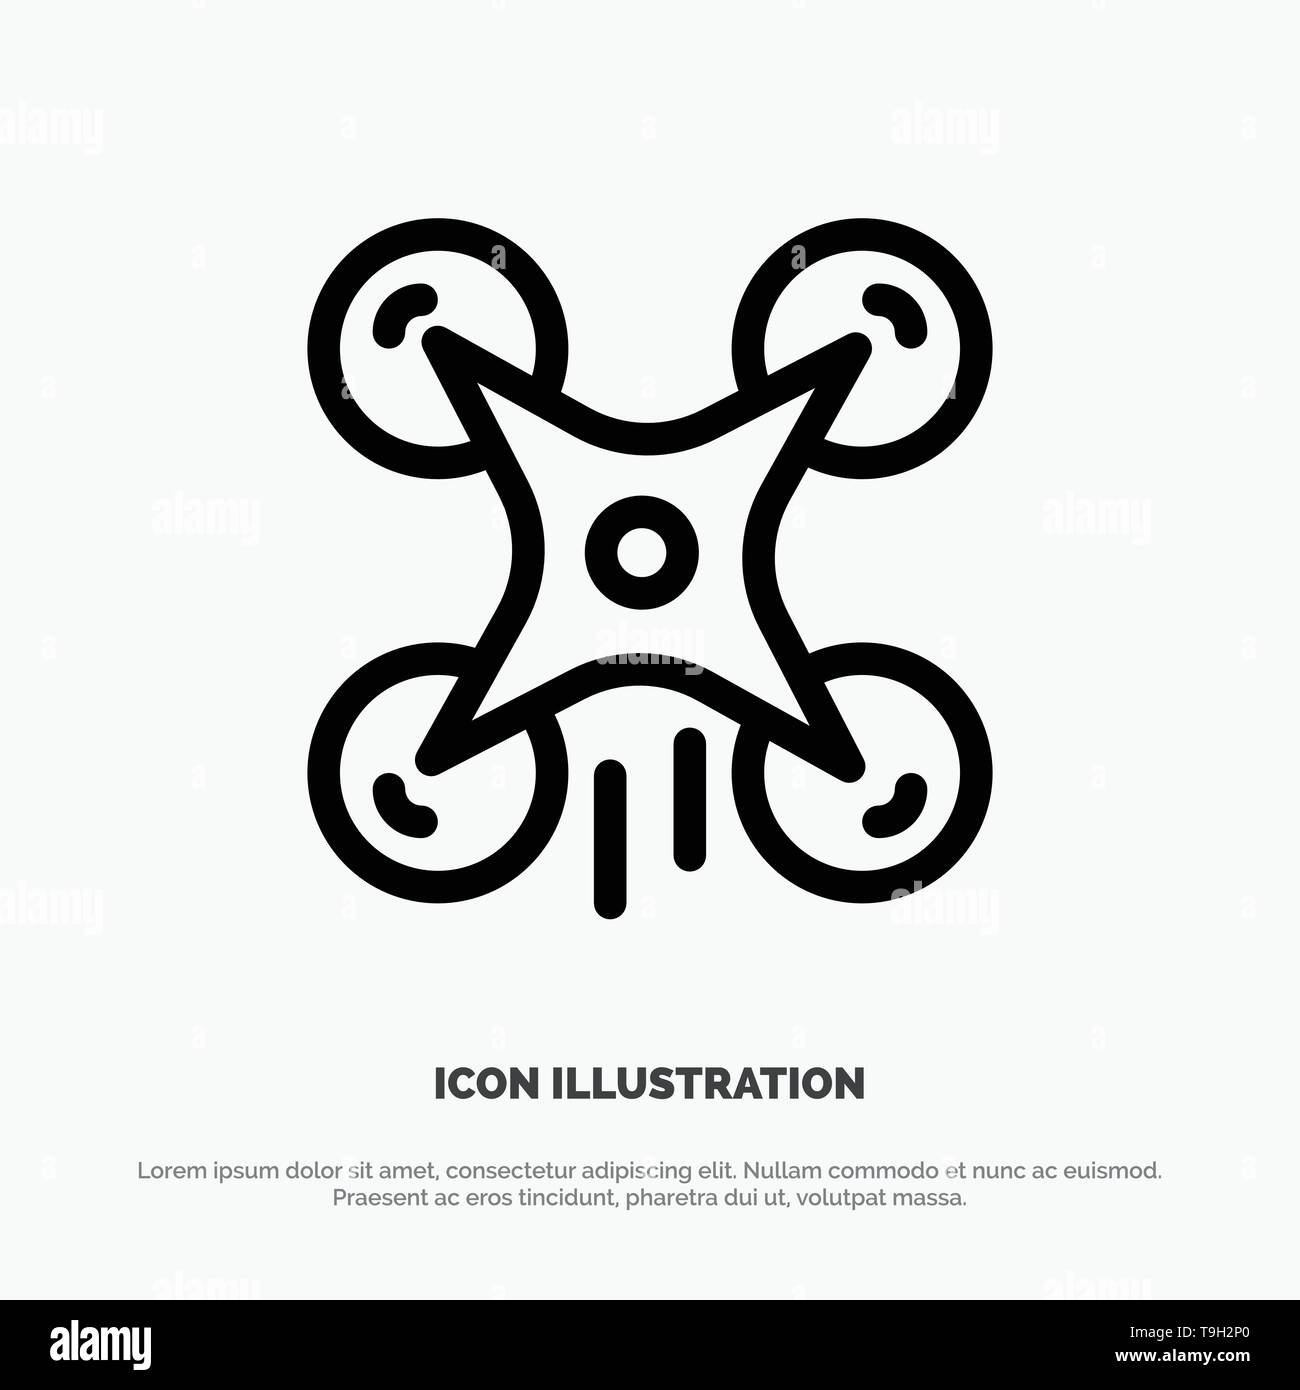 Technology, Drone, Camera, Image Line Icon Vector - Stock Image